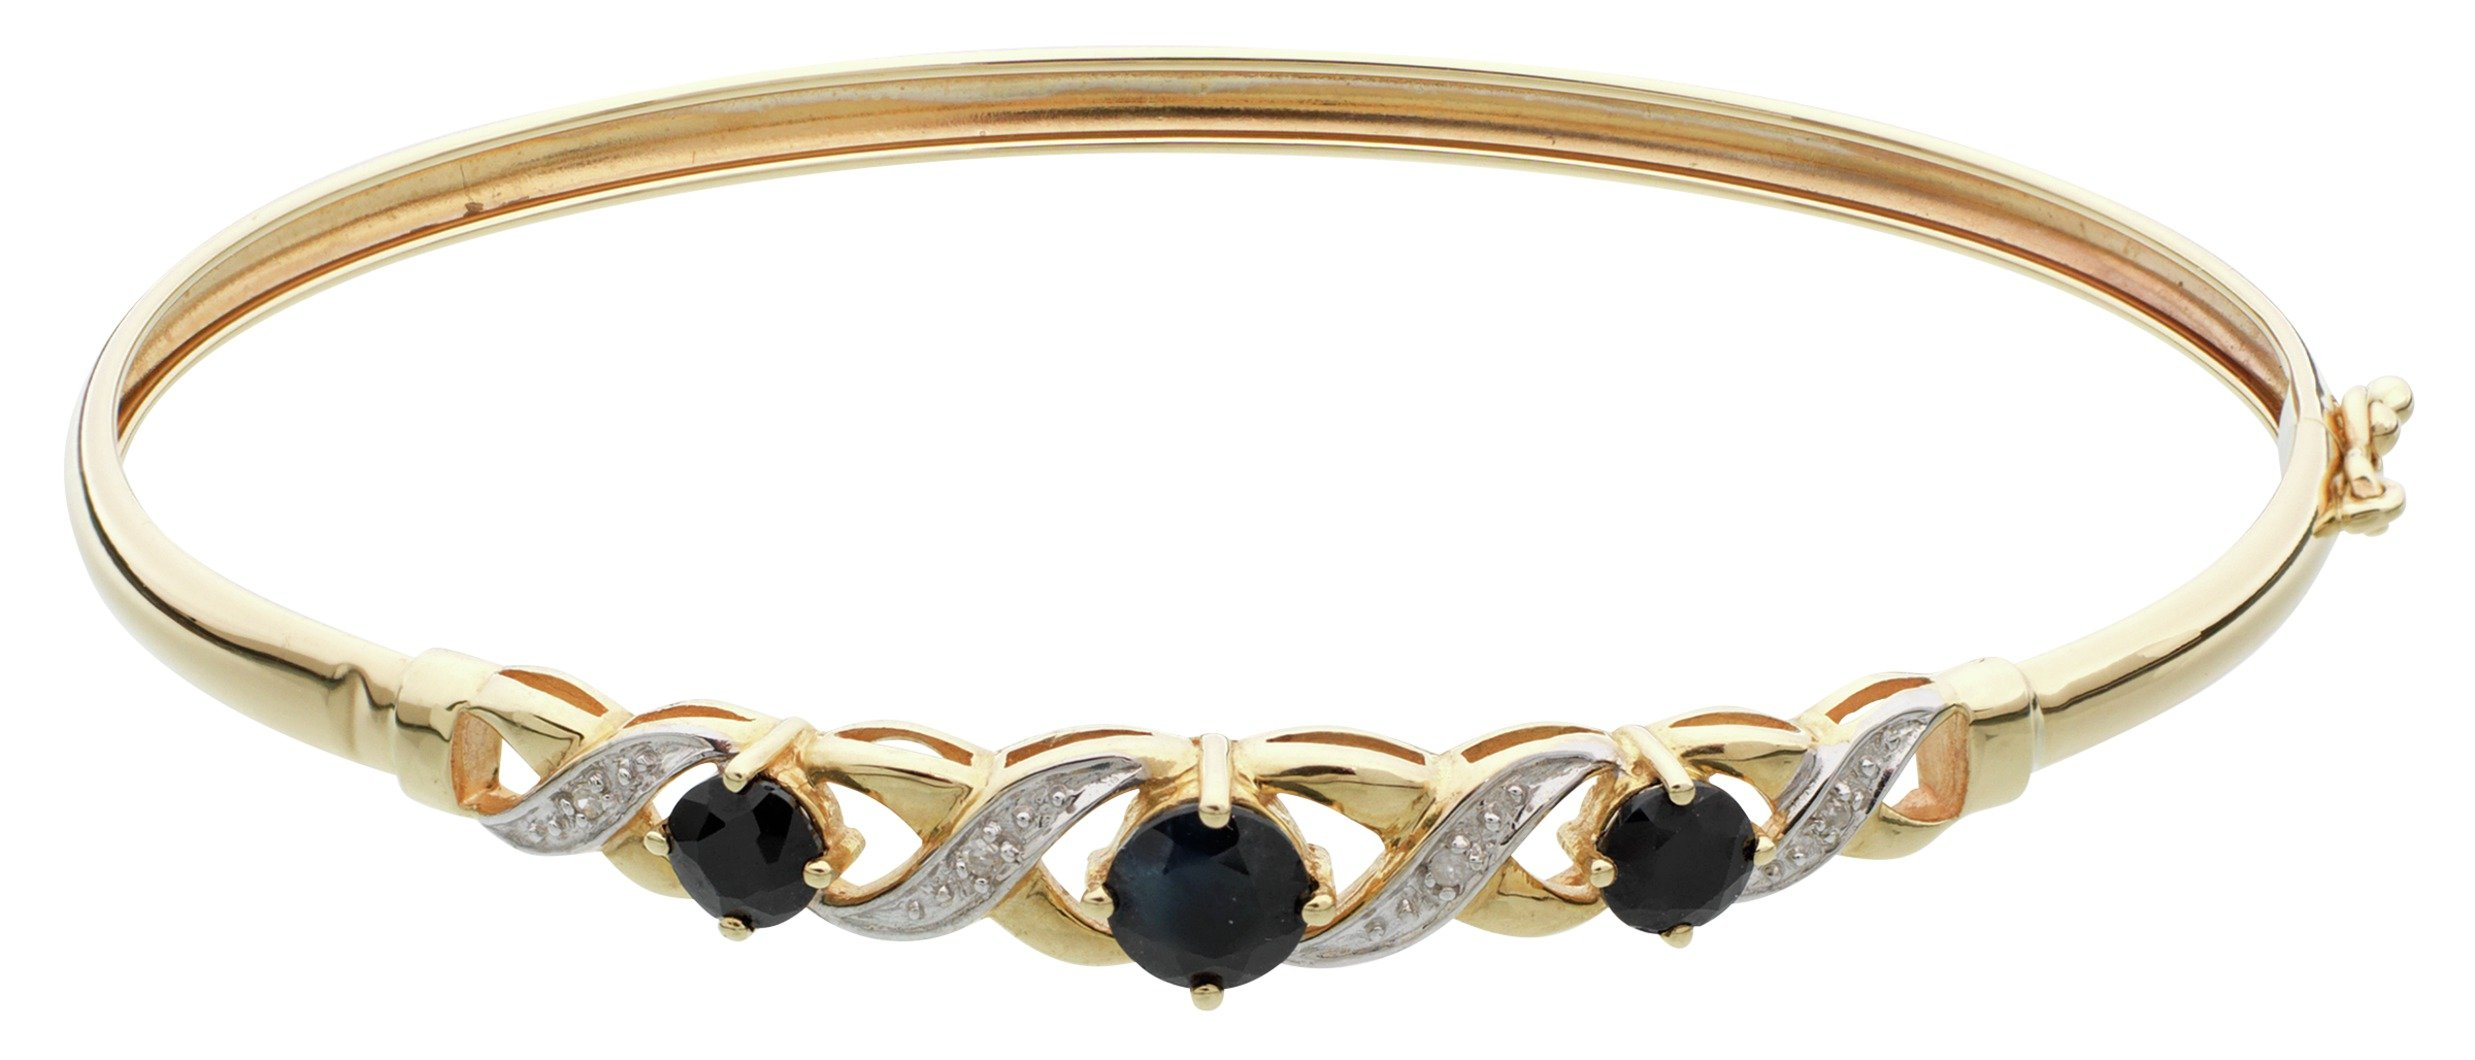 Image of 9 Carat Gold - Black Sapphire and Diamond Accent Flexible Bangle.